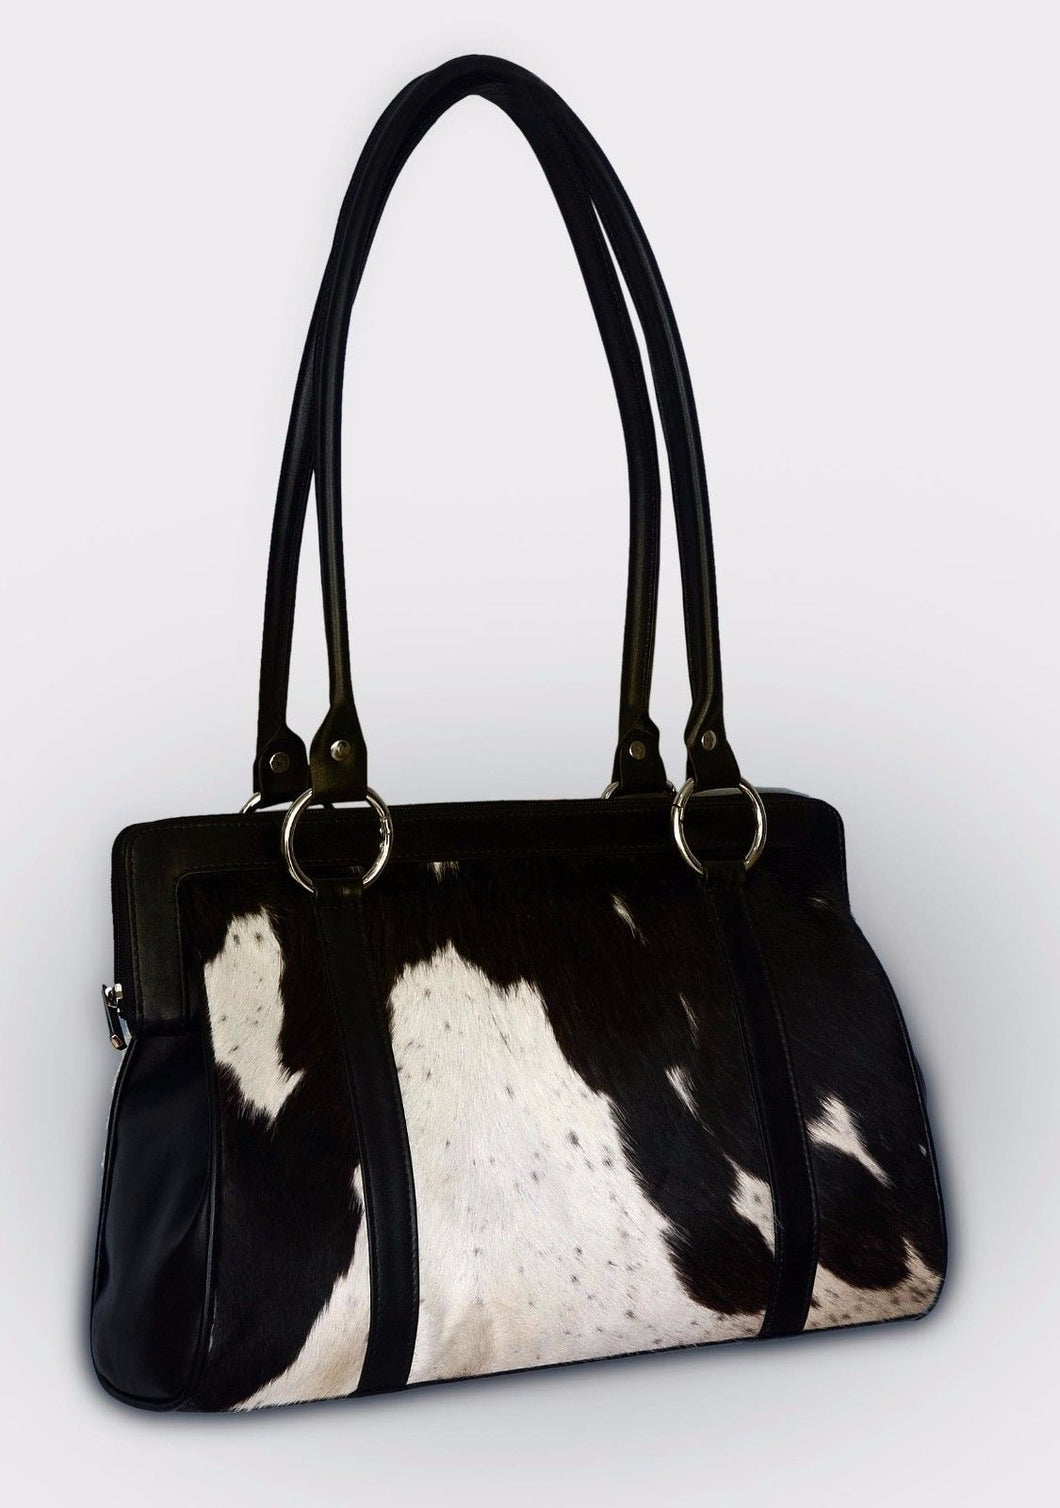 Black And White Cowhide Purse